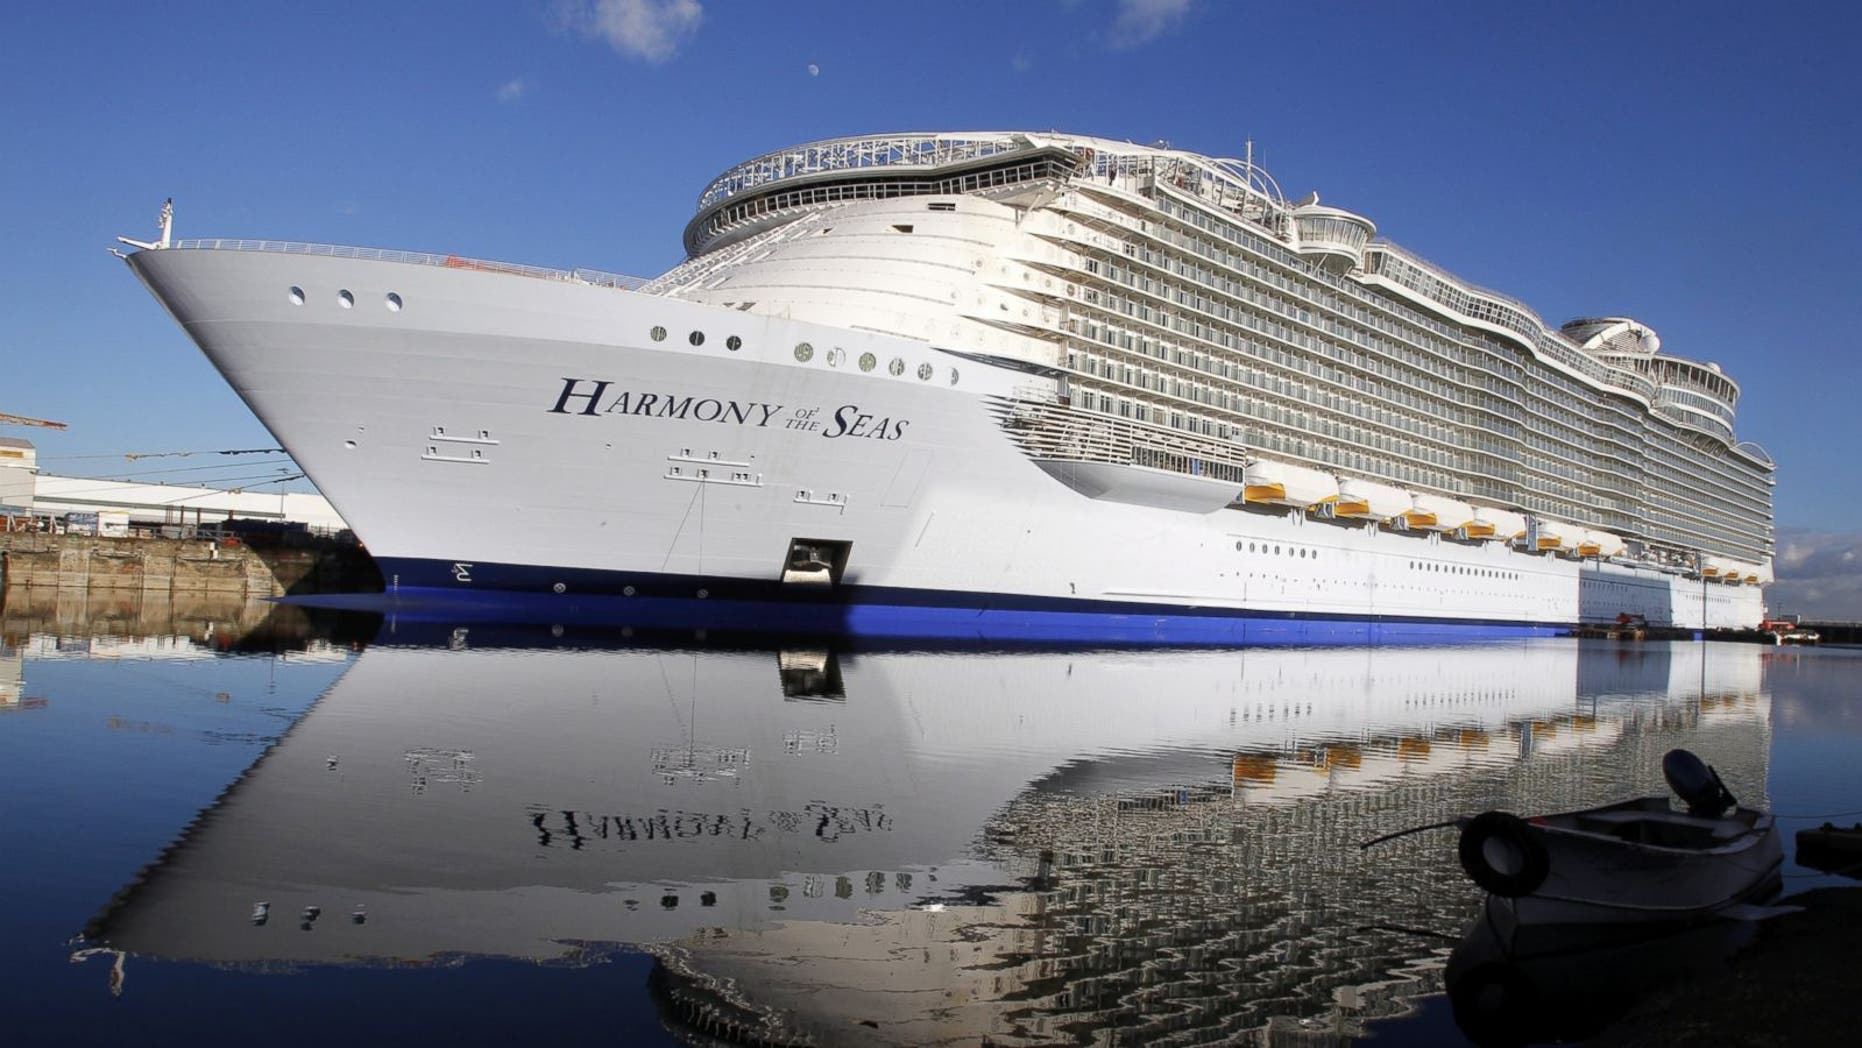 The Harmony of the Seas is the world's largest cruise ship.